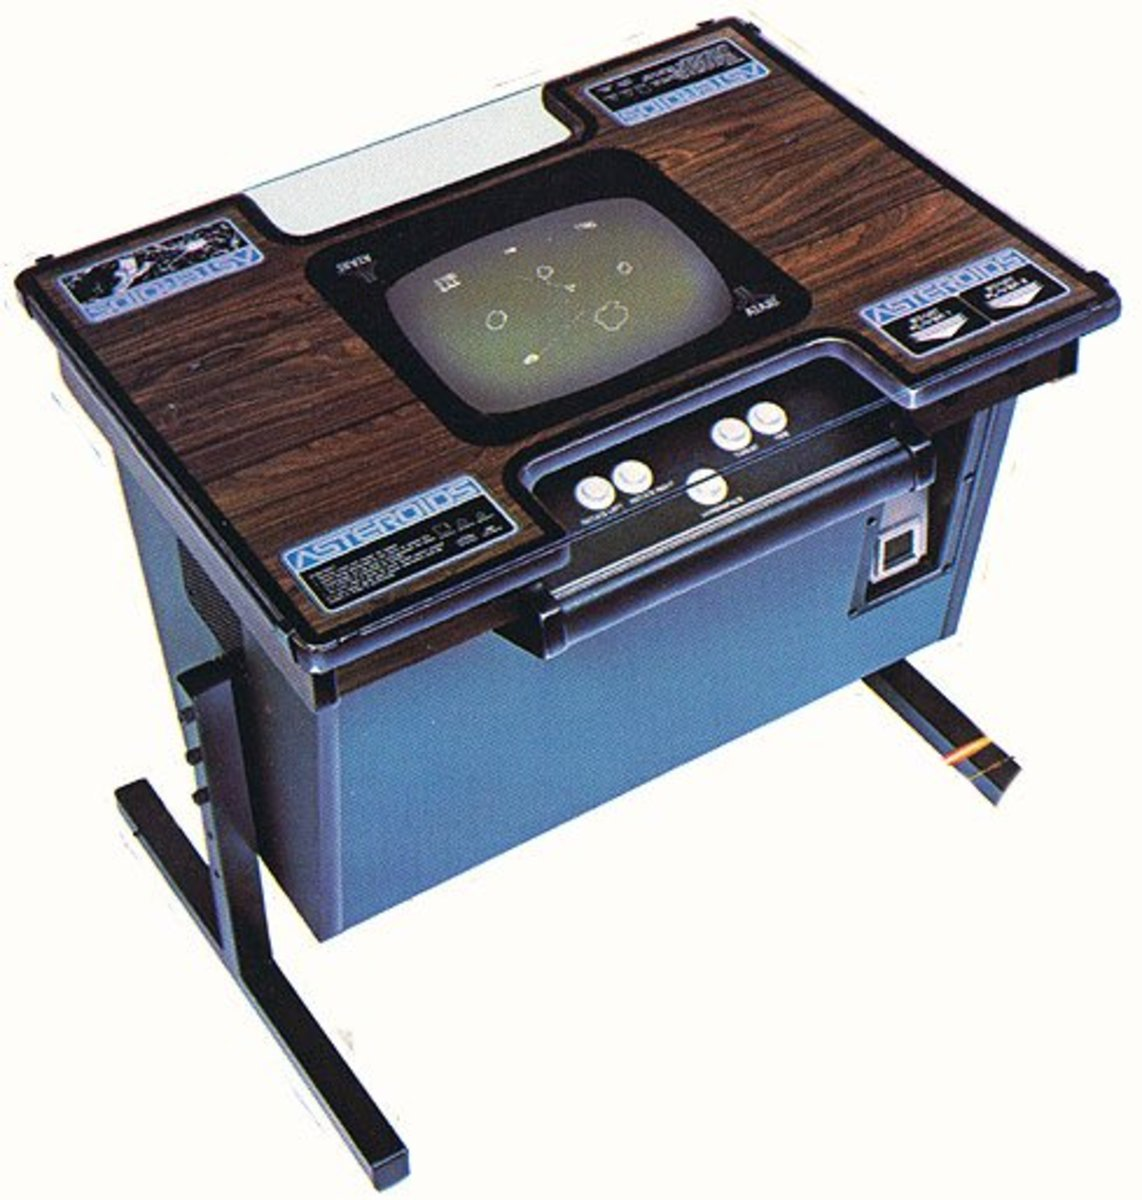 Asteroids Cocktail Cabinet